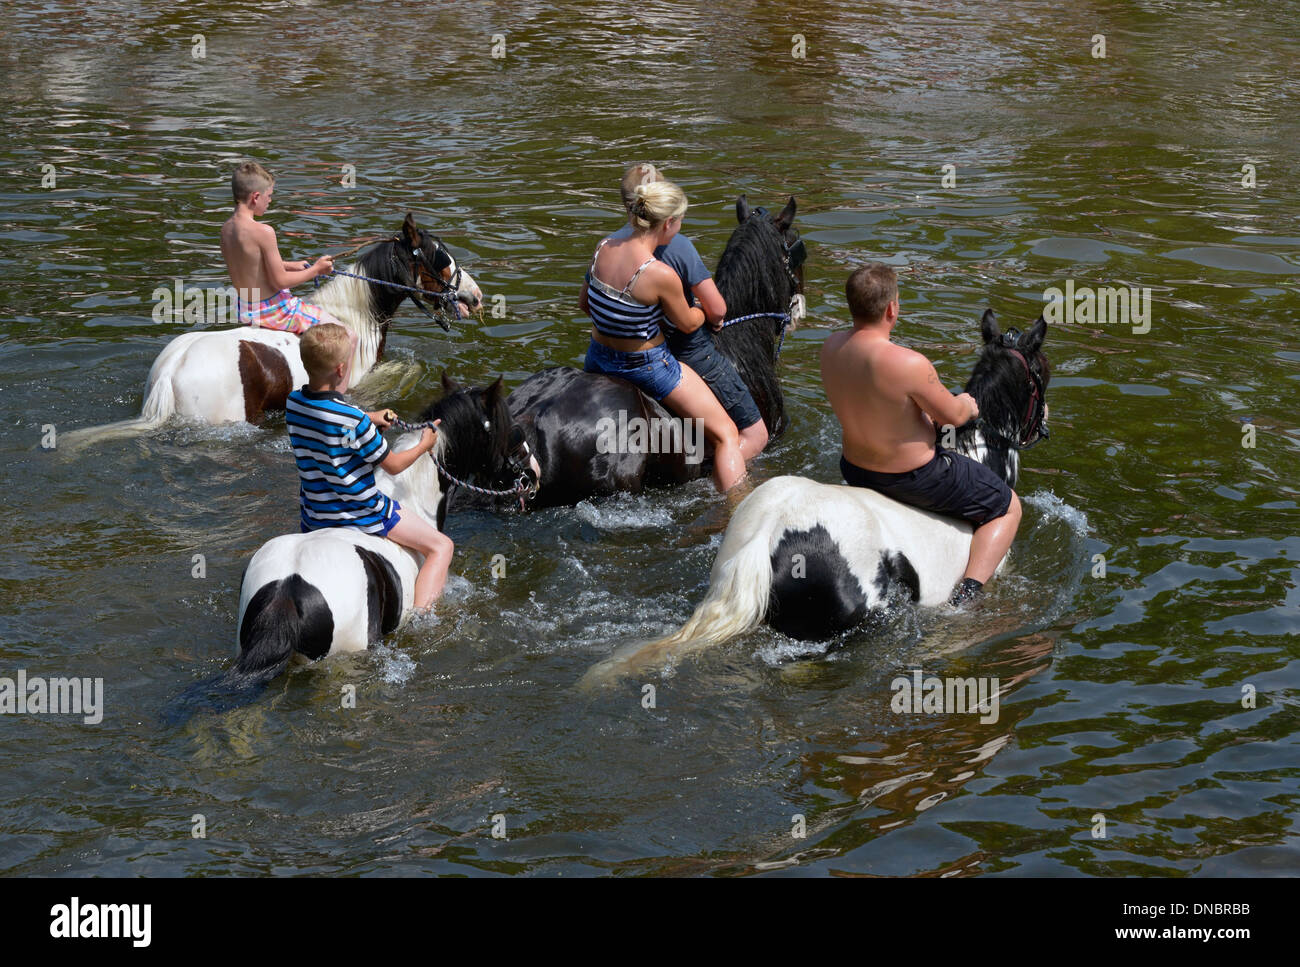 Gypsy travellers riding horses in River Eden. Appleby Horse Fair, Appleby-in-Westmorland, Cumbria, England, United Kingdom. - Stock Image